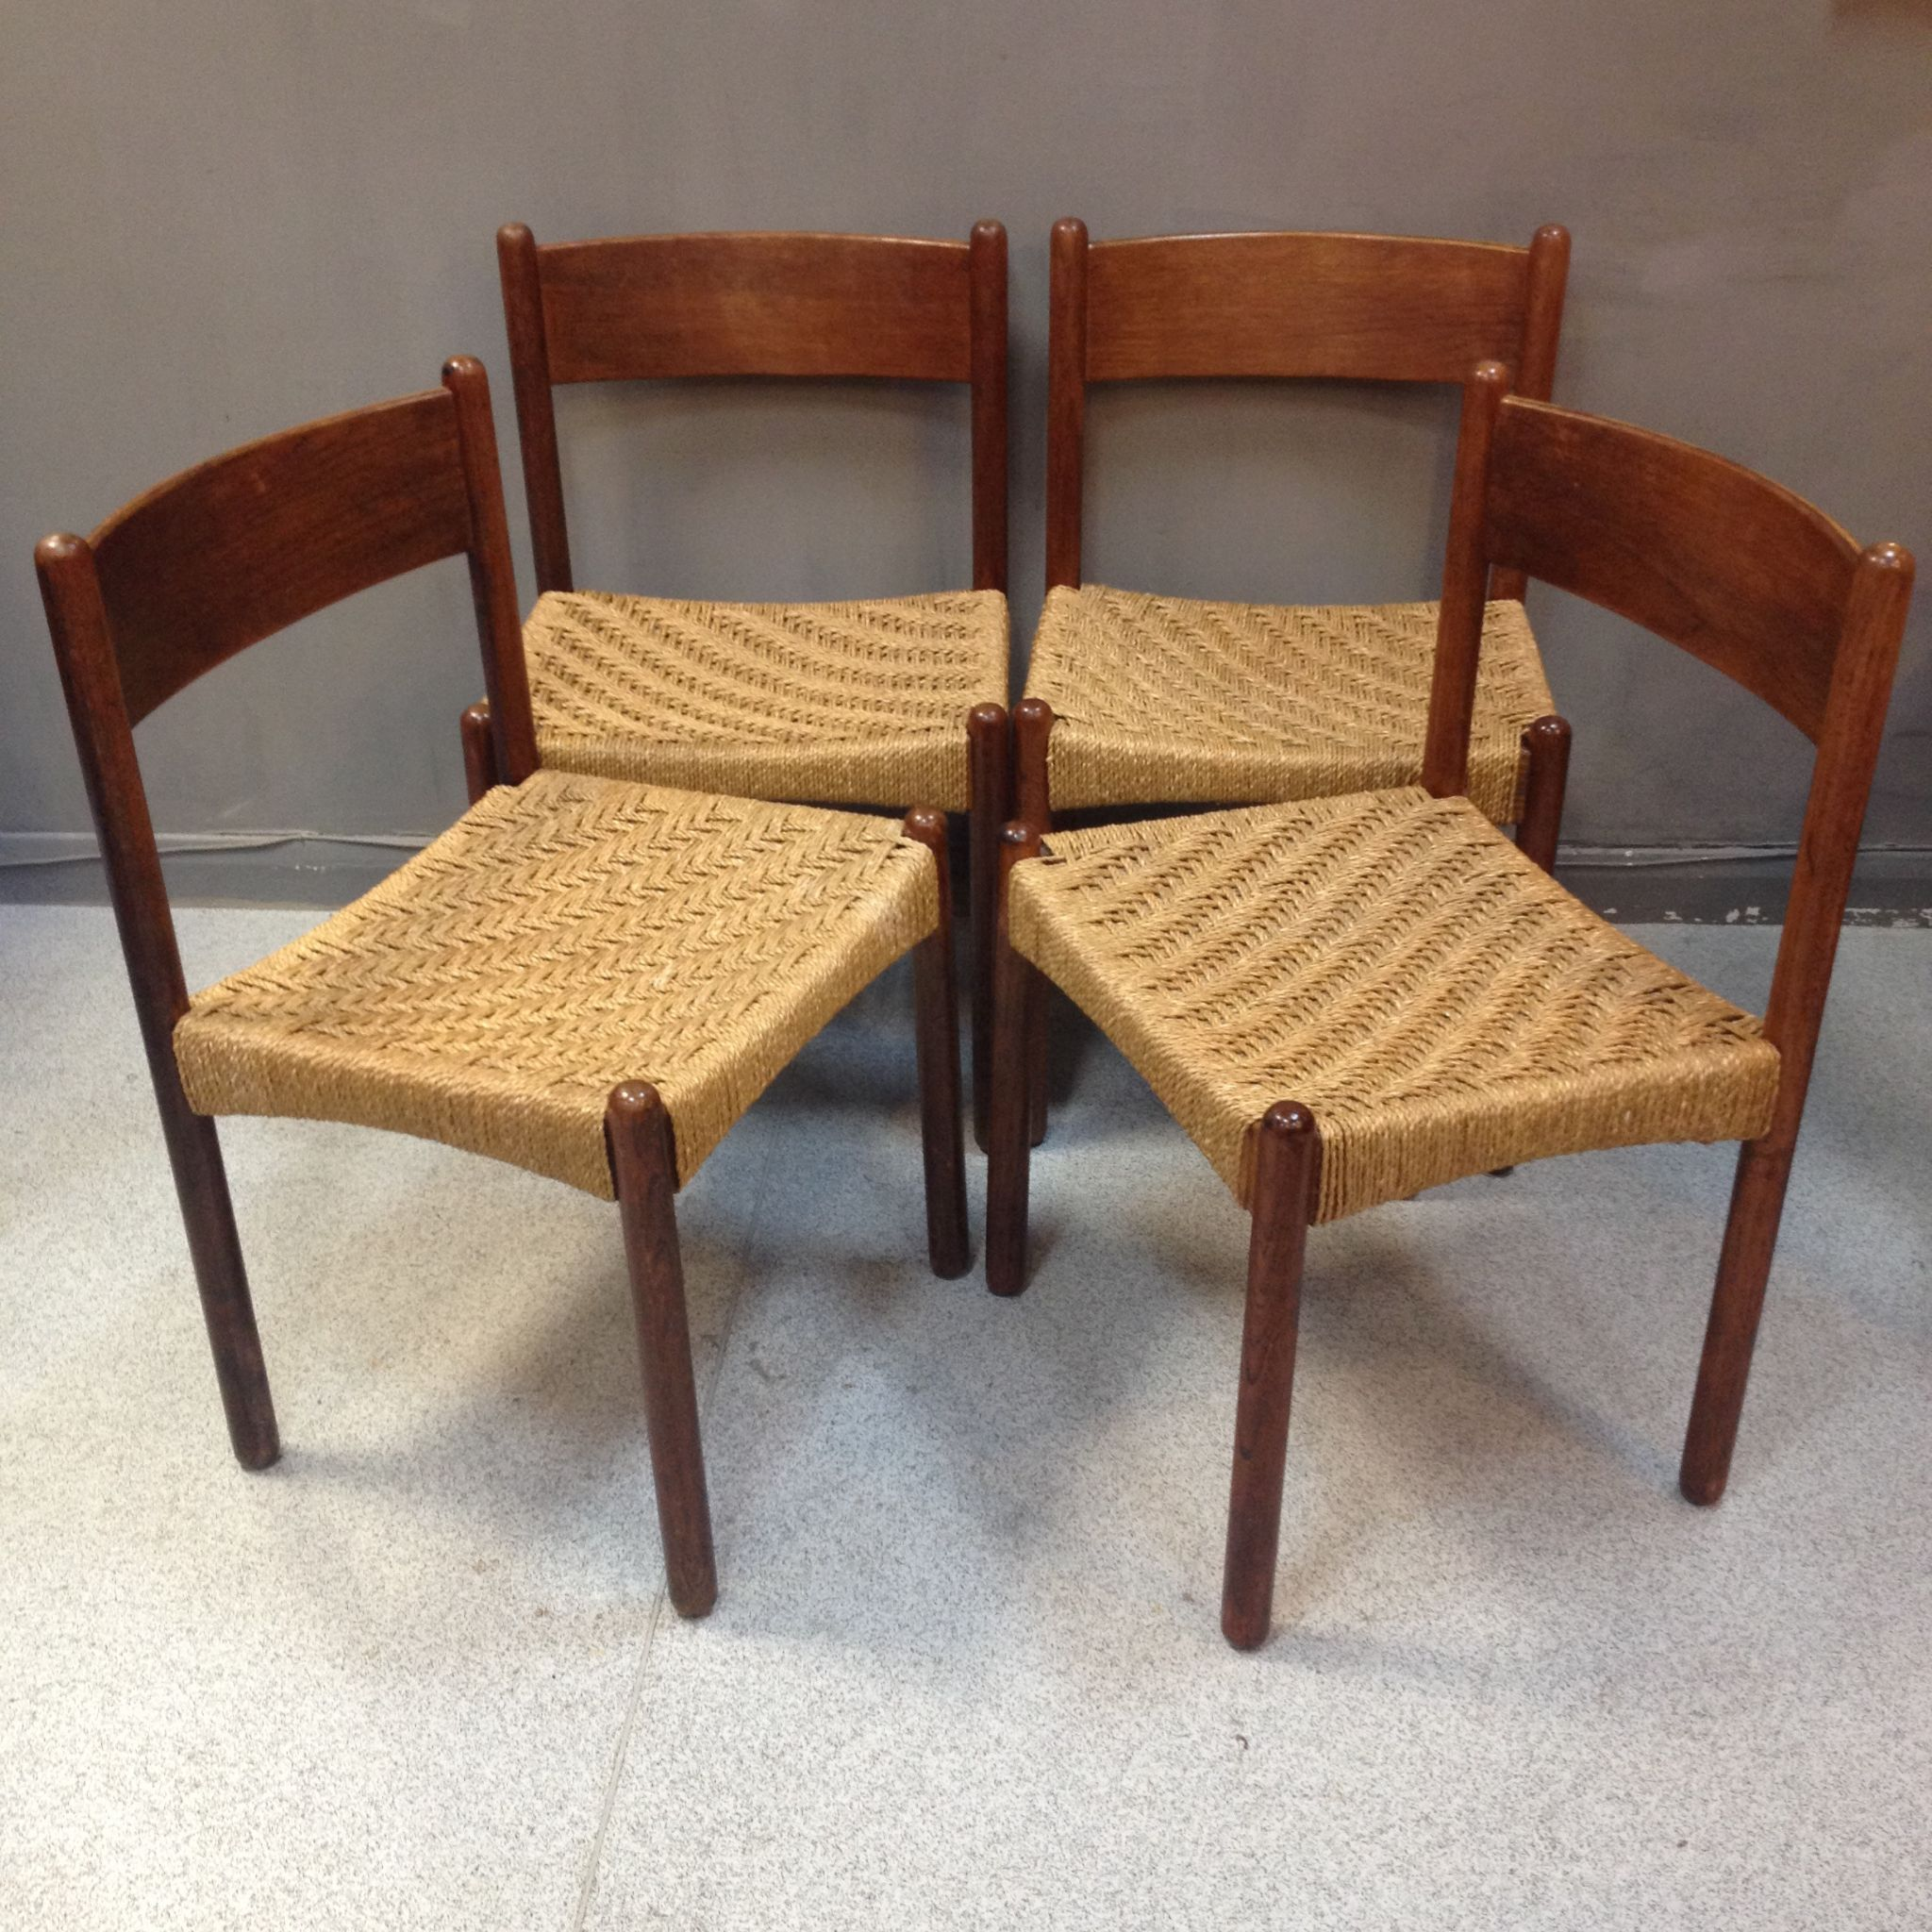 Century Danish Dining Chairs with Seagrass Seats